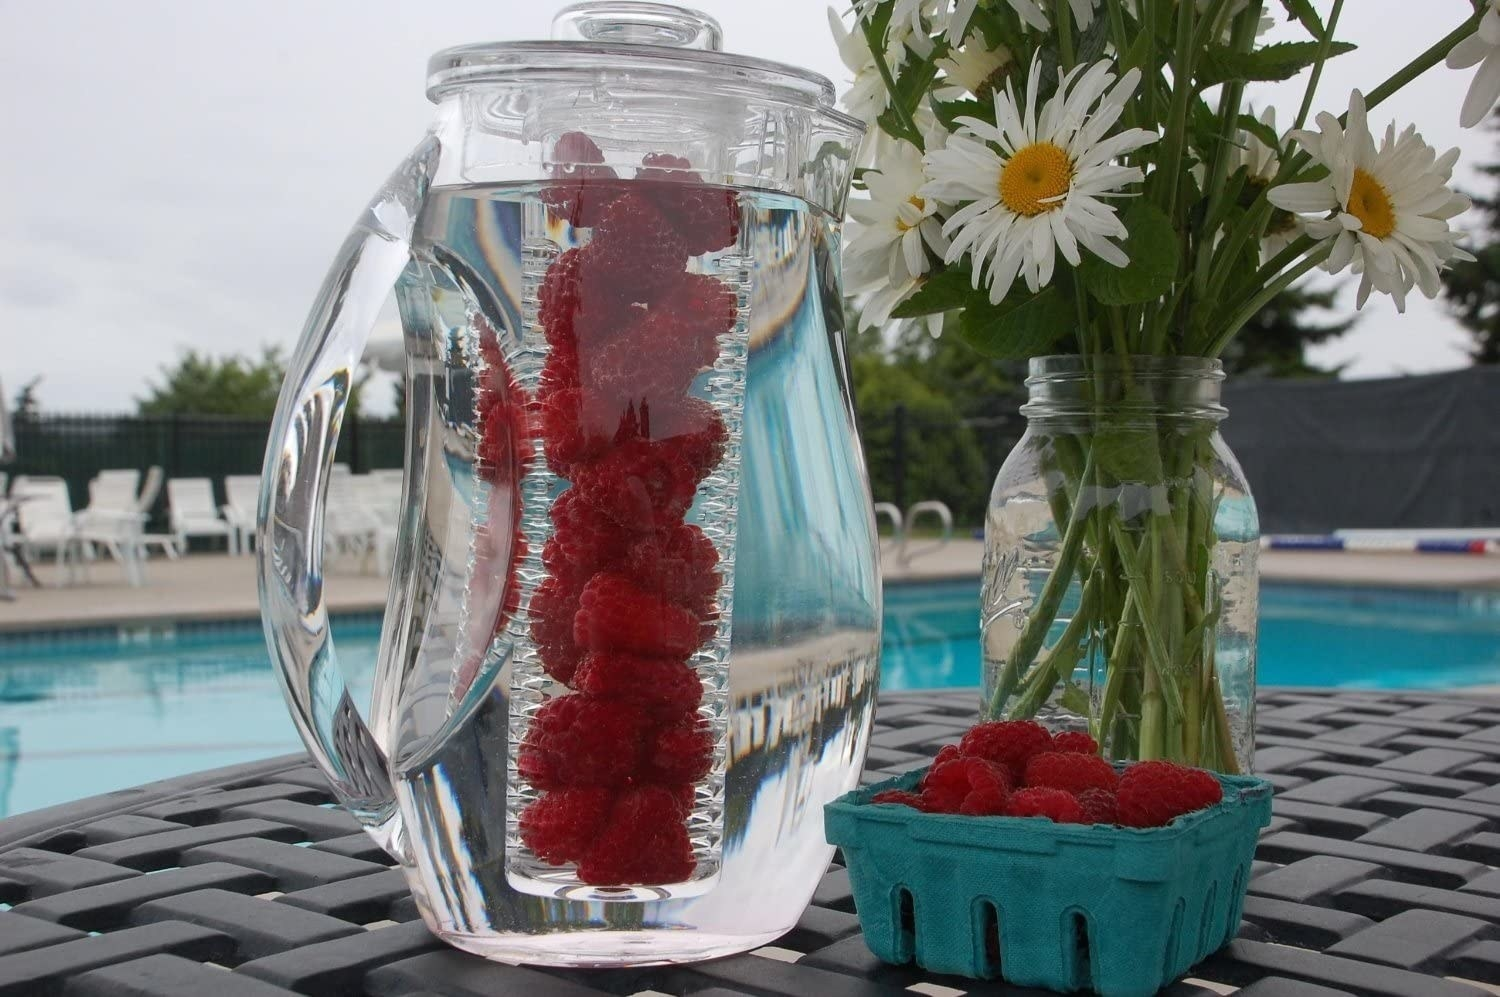 A clear fruit infuser pitcher with raspberries in the infuser